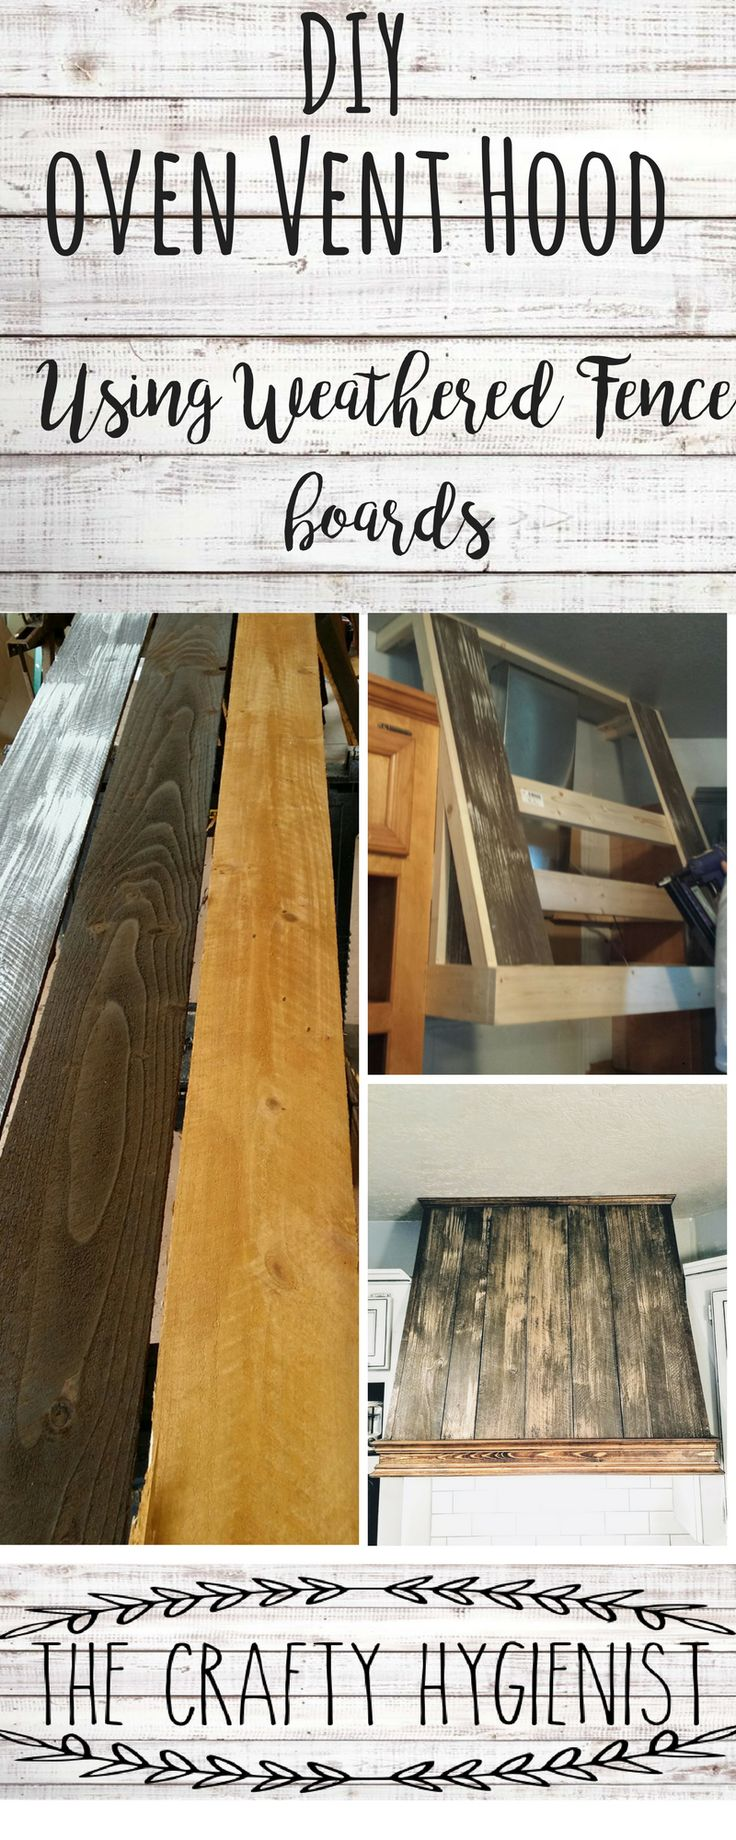 kitchen remodel using cedar fence boards to make the stove vent hood. tips on how to weather the boards and pictures of the project